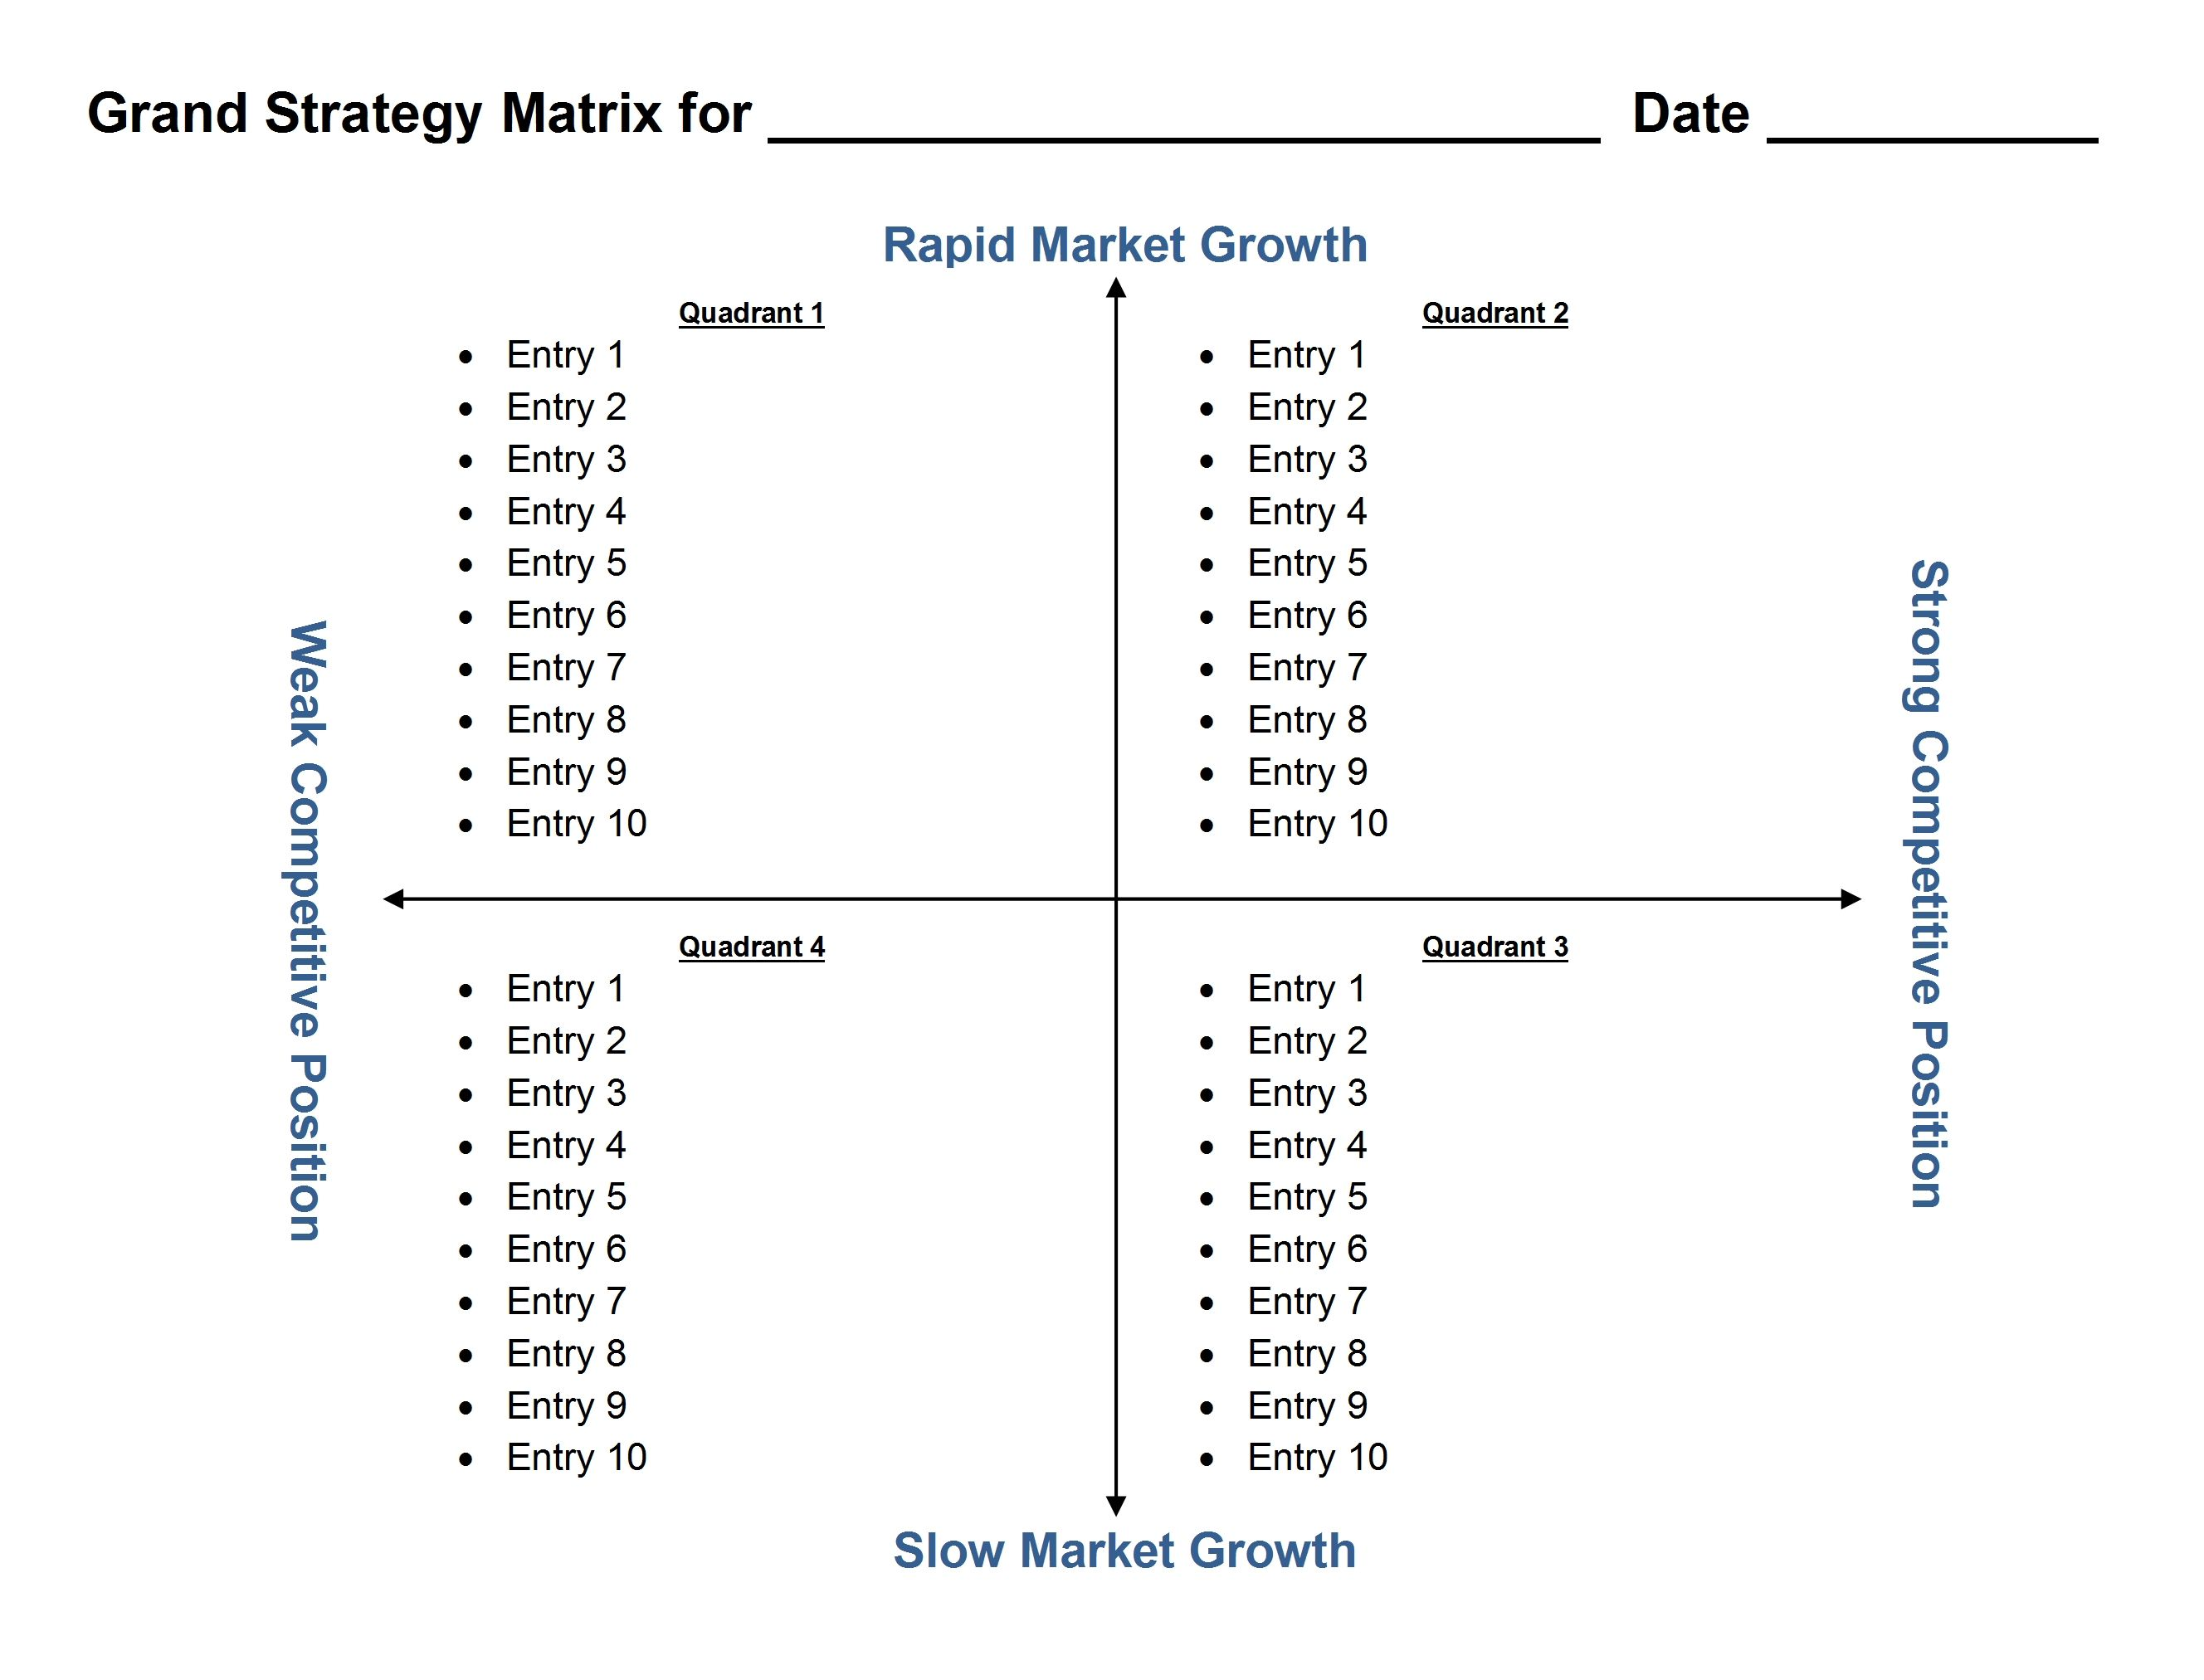 Grand Strategy Matrix Template at the Business Tools Store